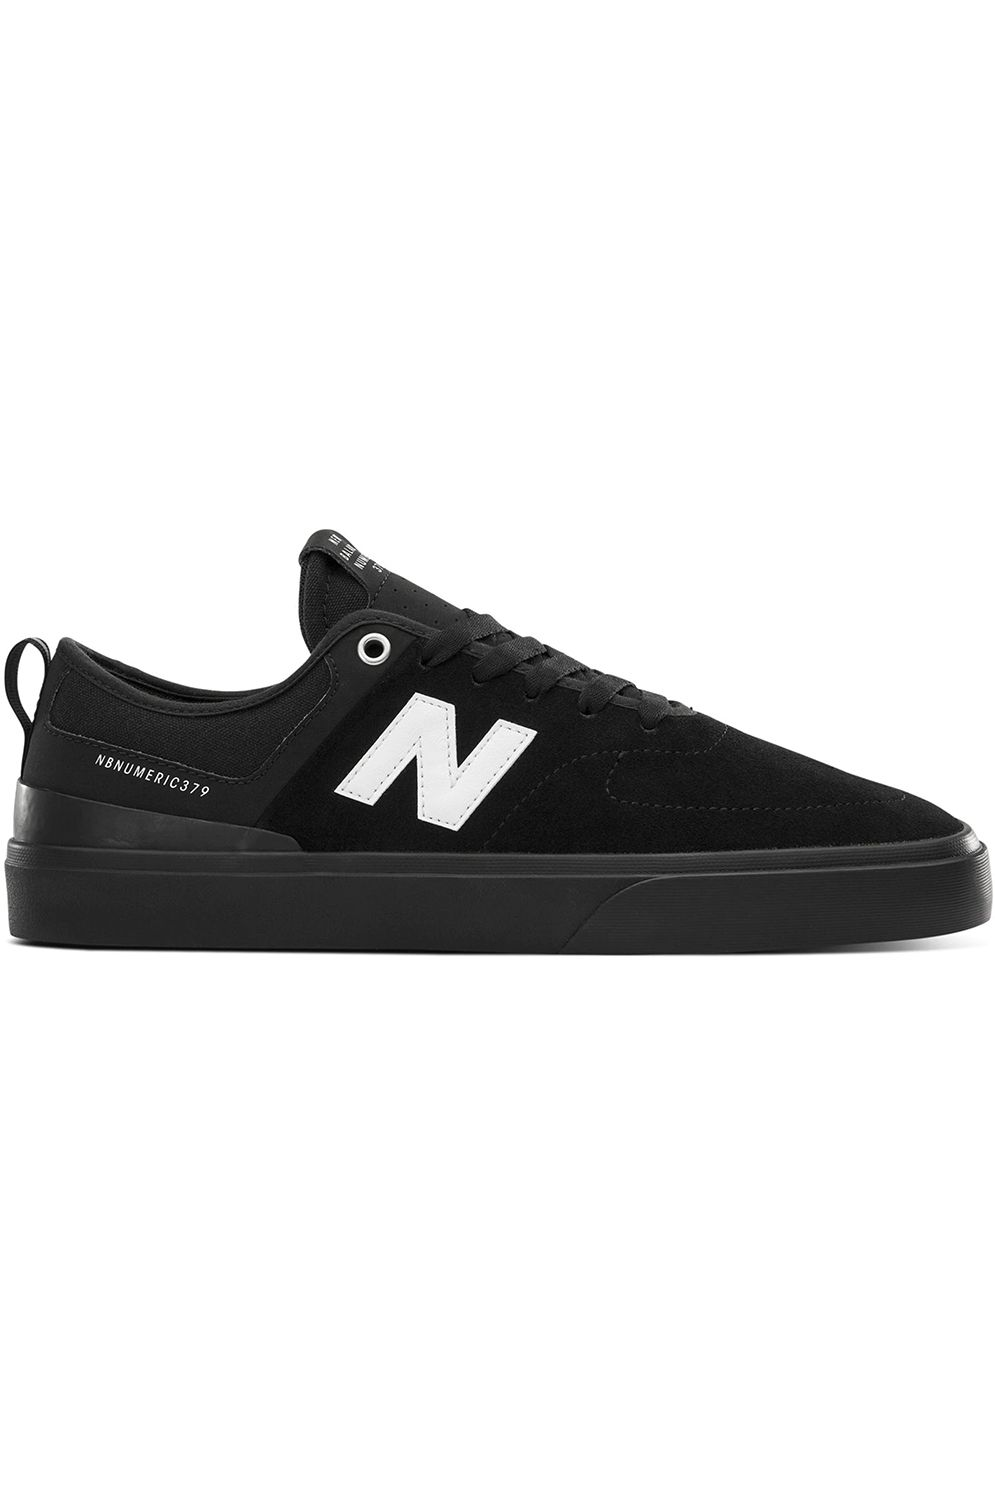 Tenis New Balance NB NUMERIC 379V1 Black